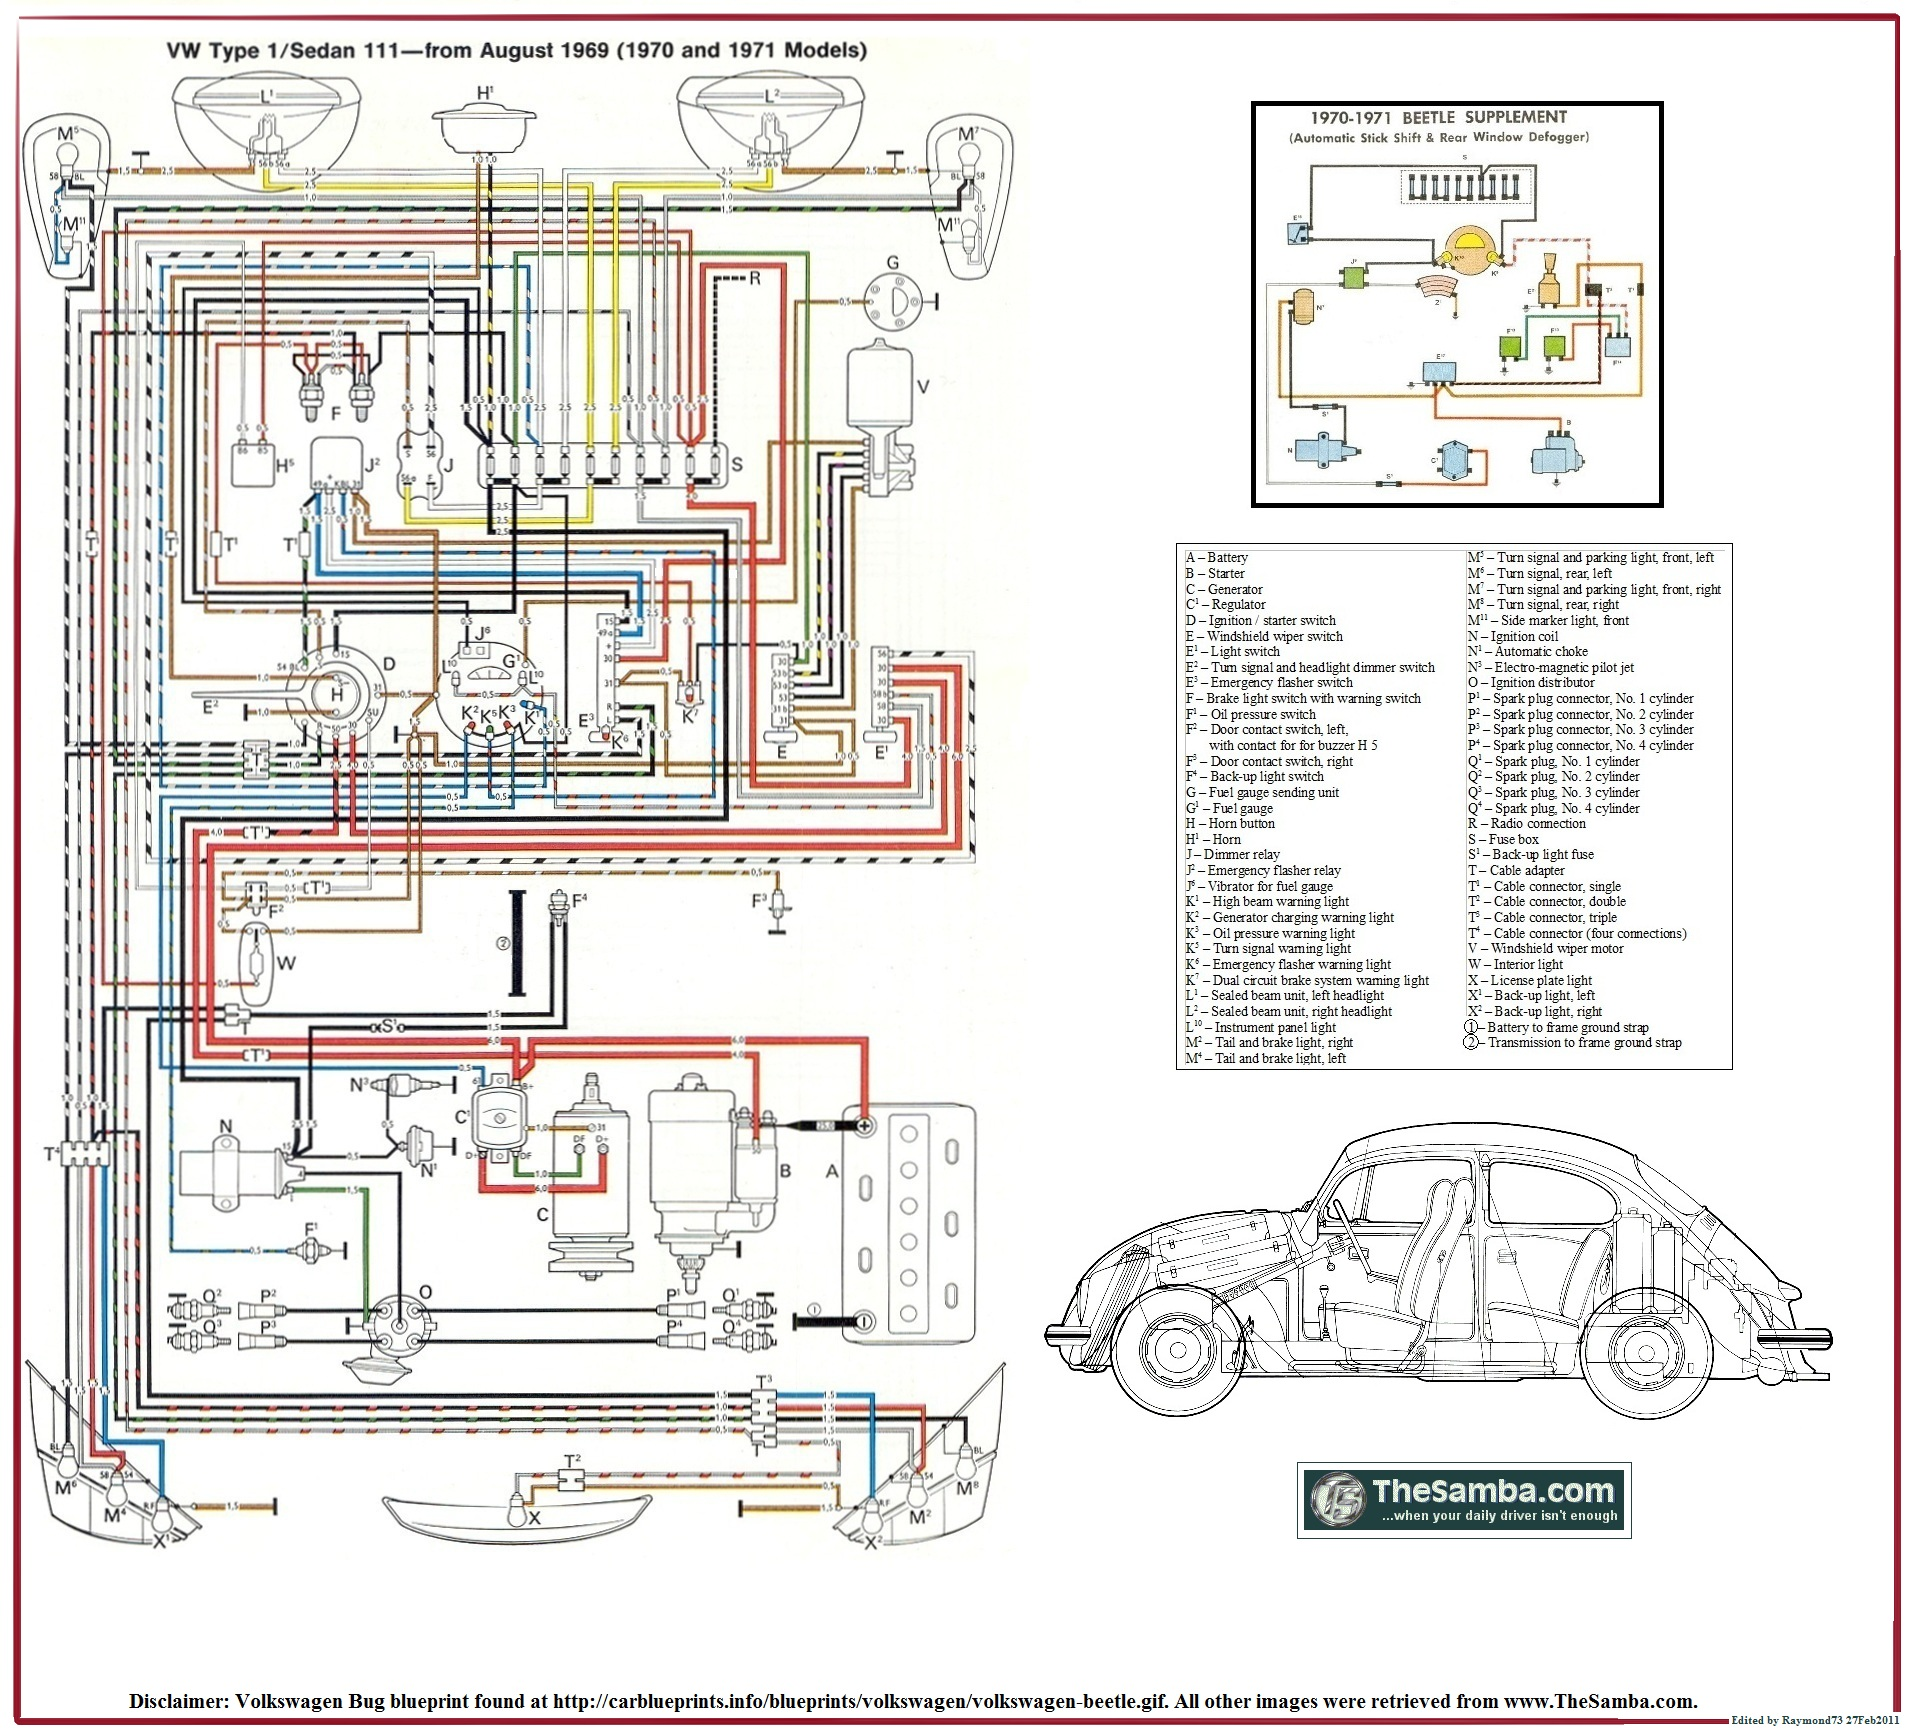 1970_VW_Type_1_Poster 1970 beetle wiring schematic yamaha motorcycle wiring diagrams VW Bug Headlight Assembly at reclaimingppi.co